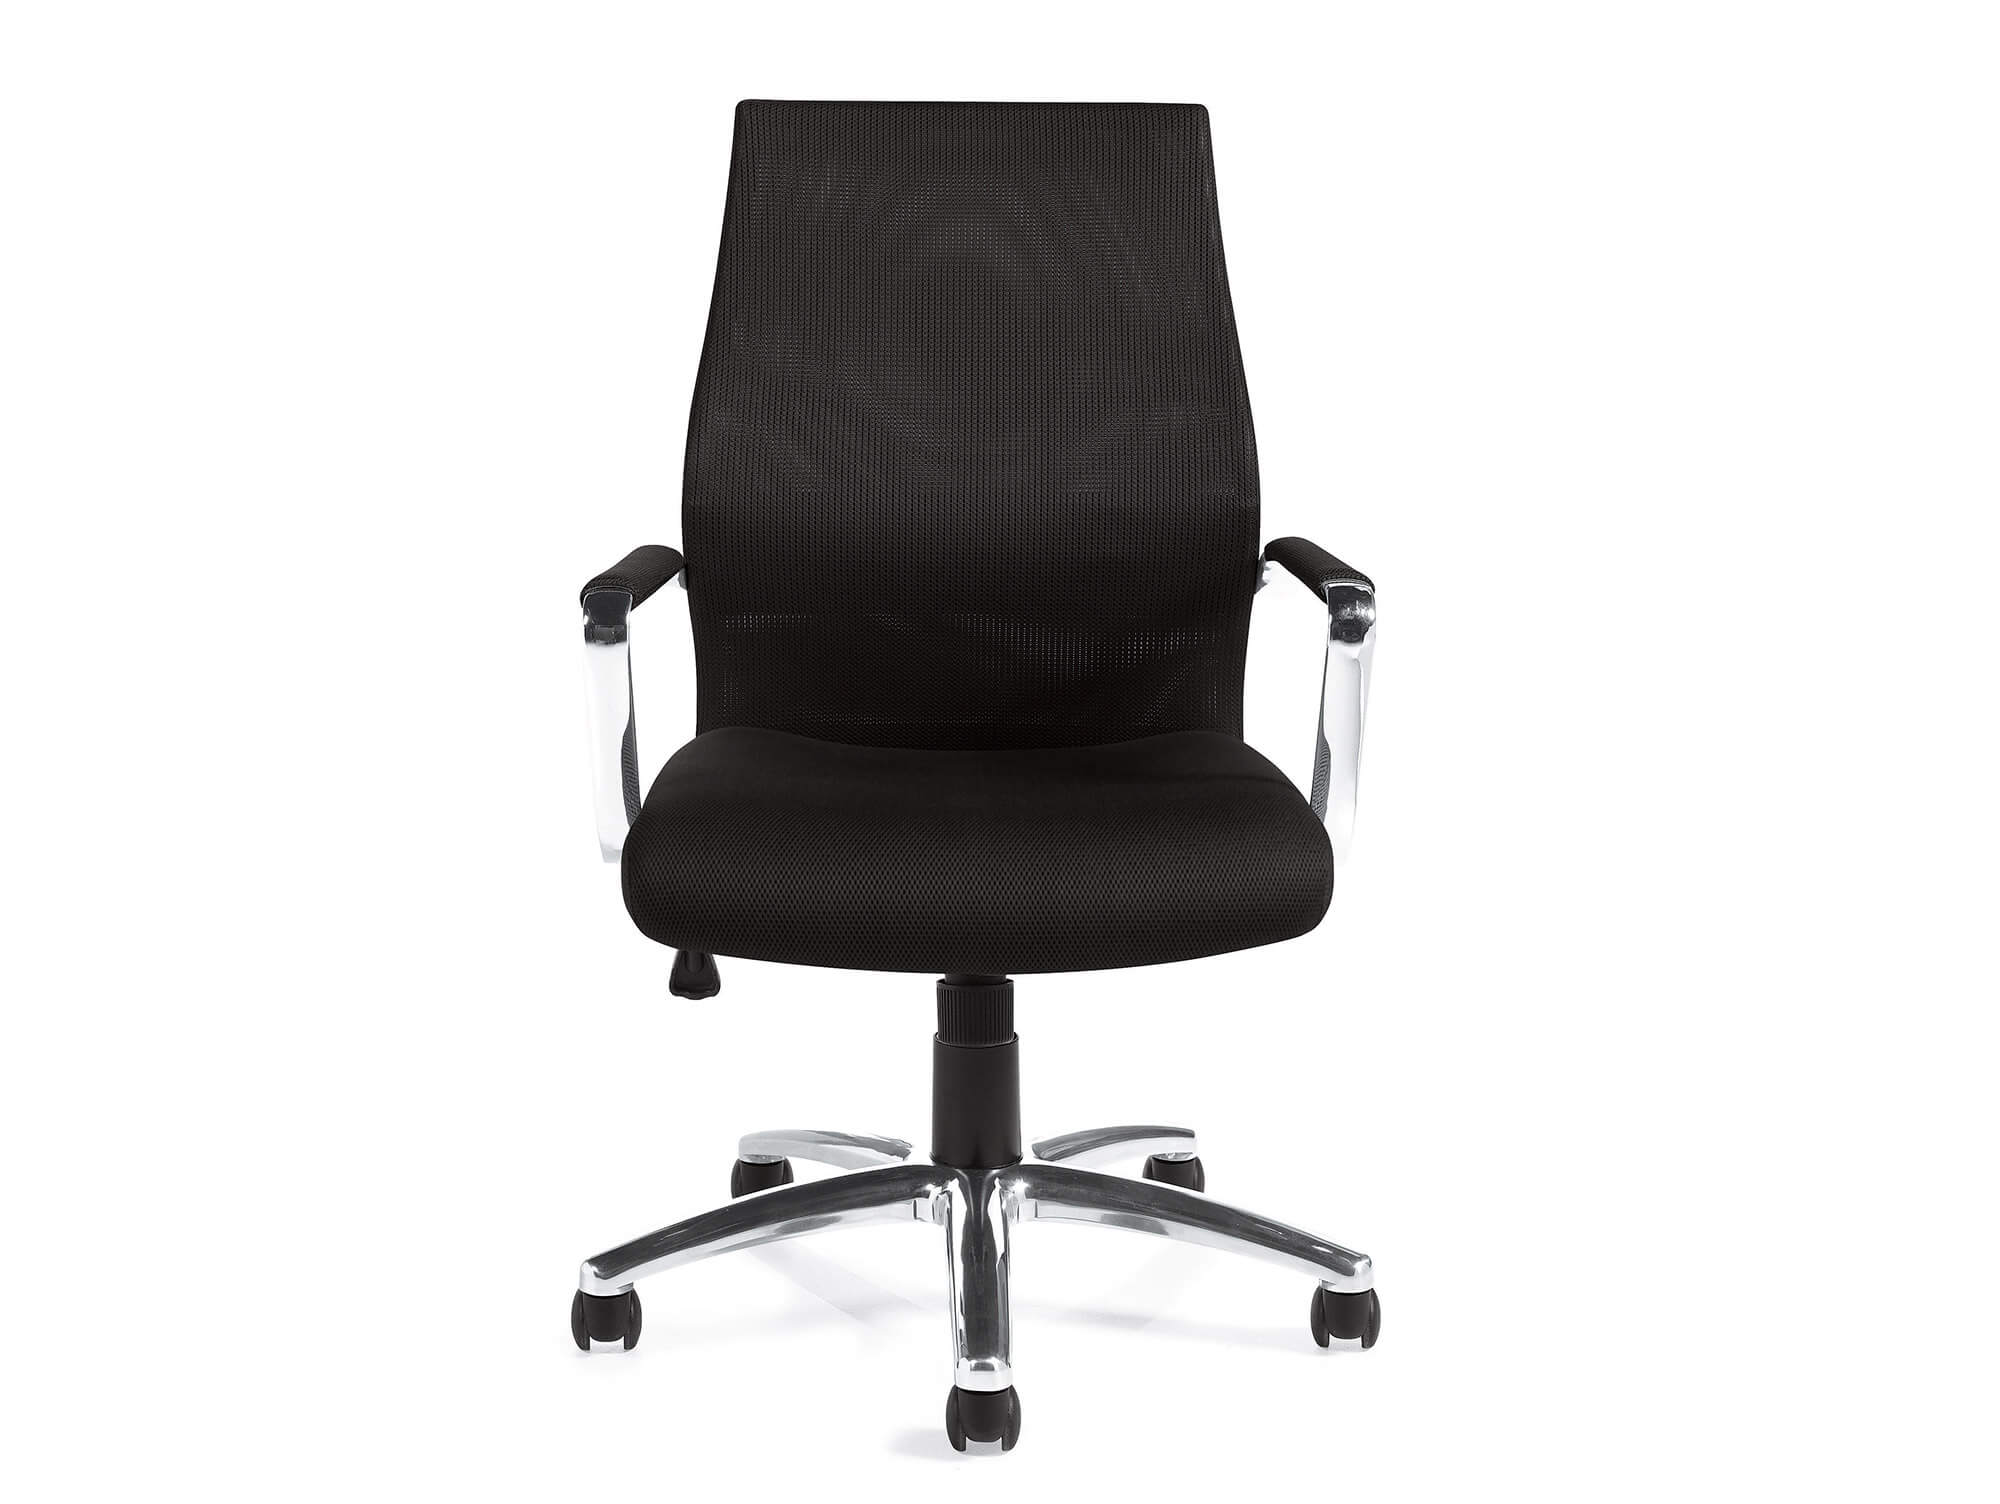 Modern office chair front